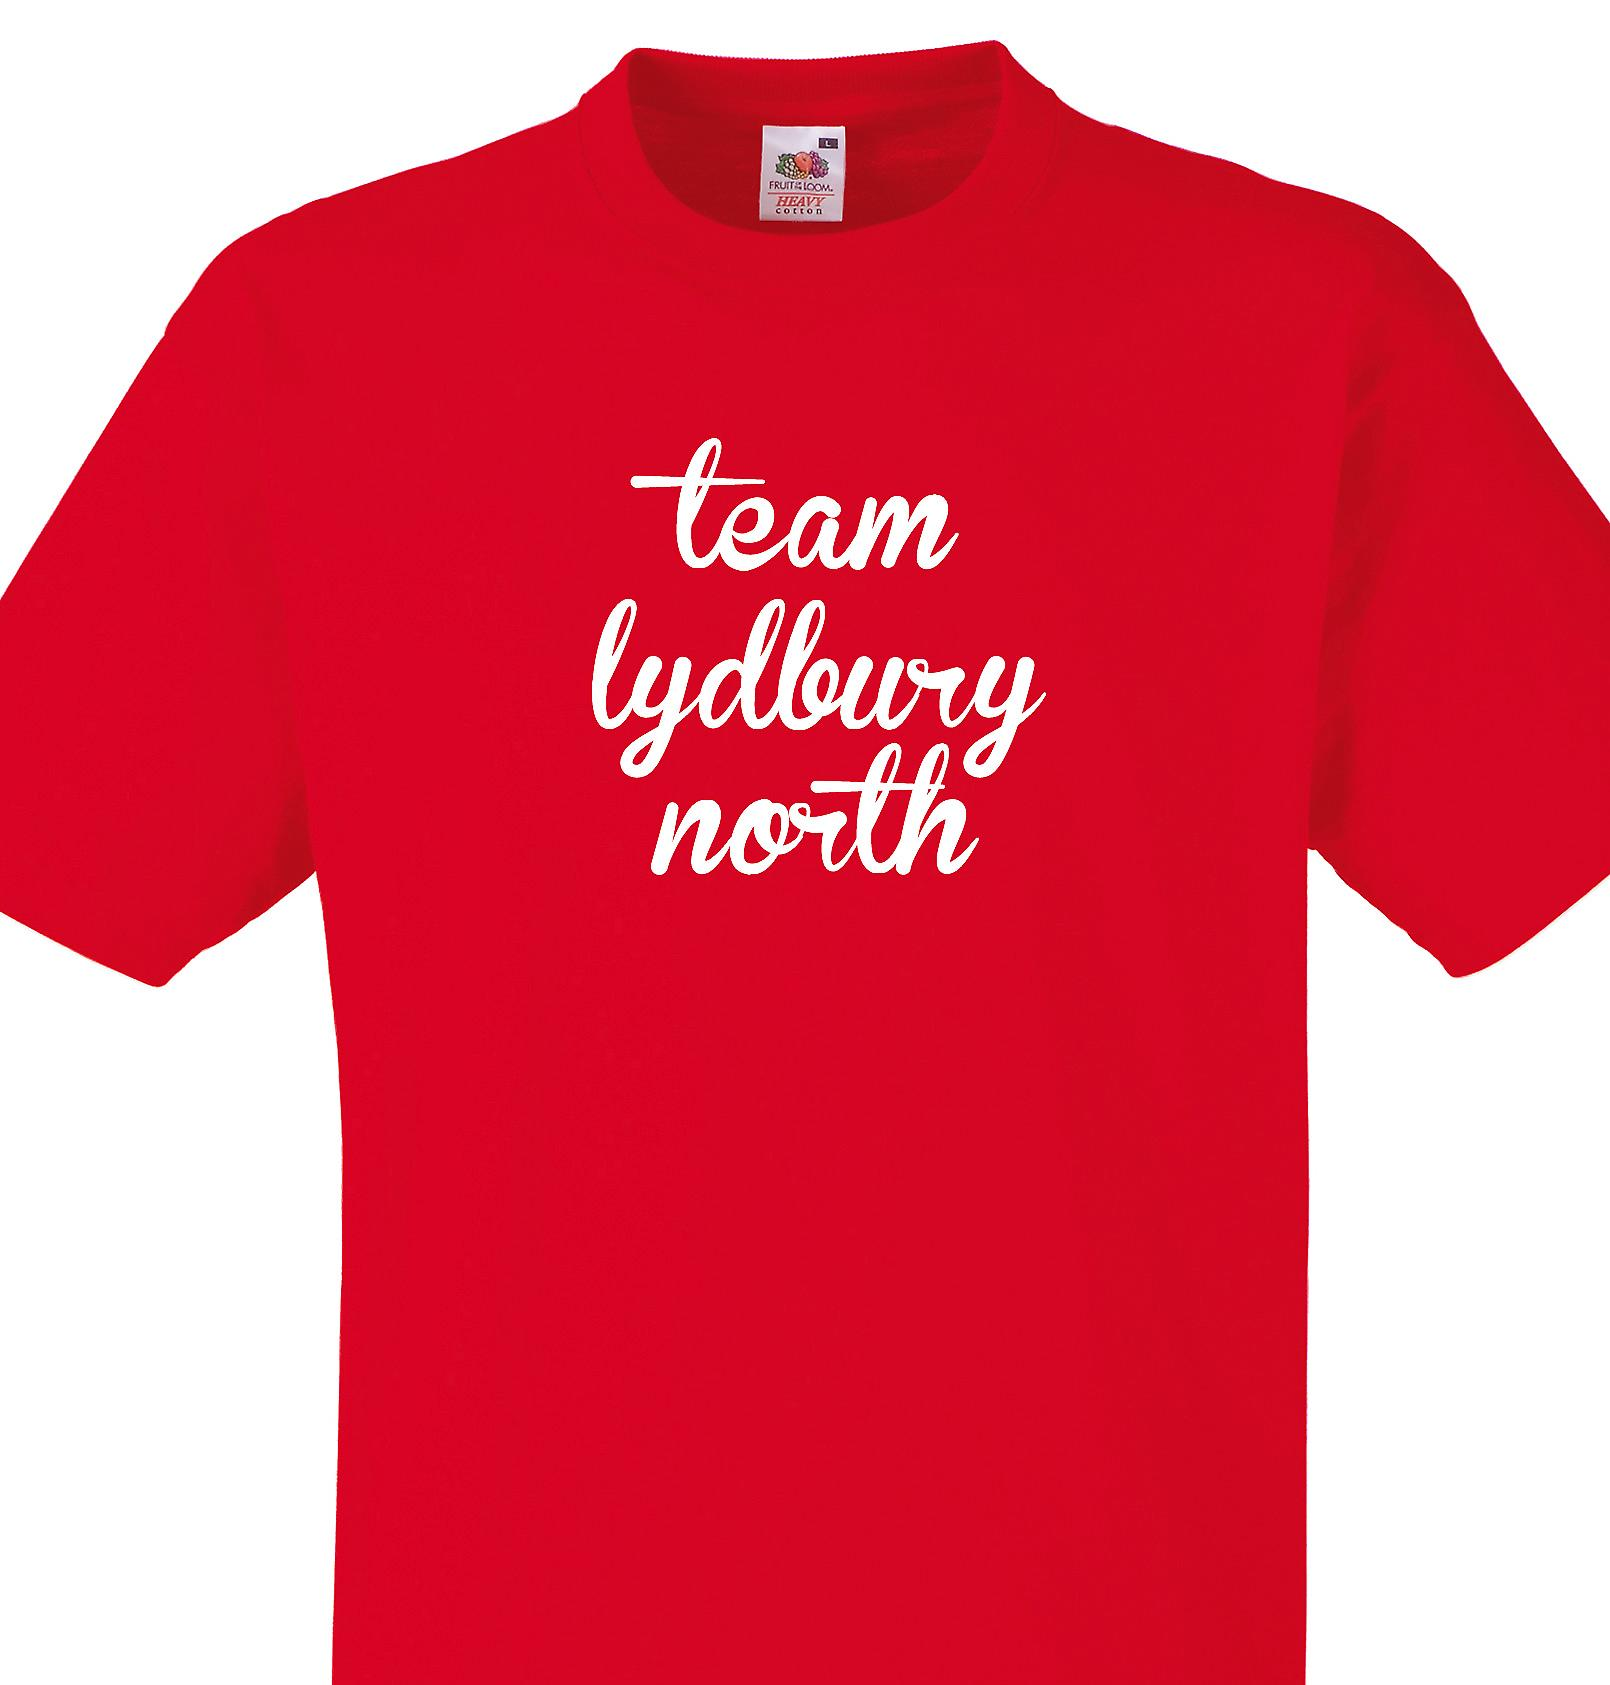 Team Lydbury north Red T shirt